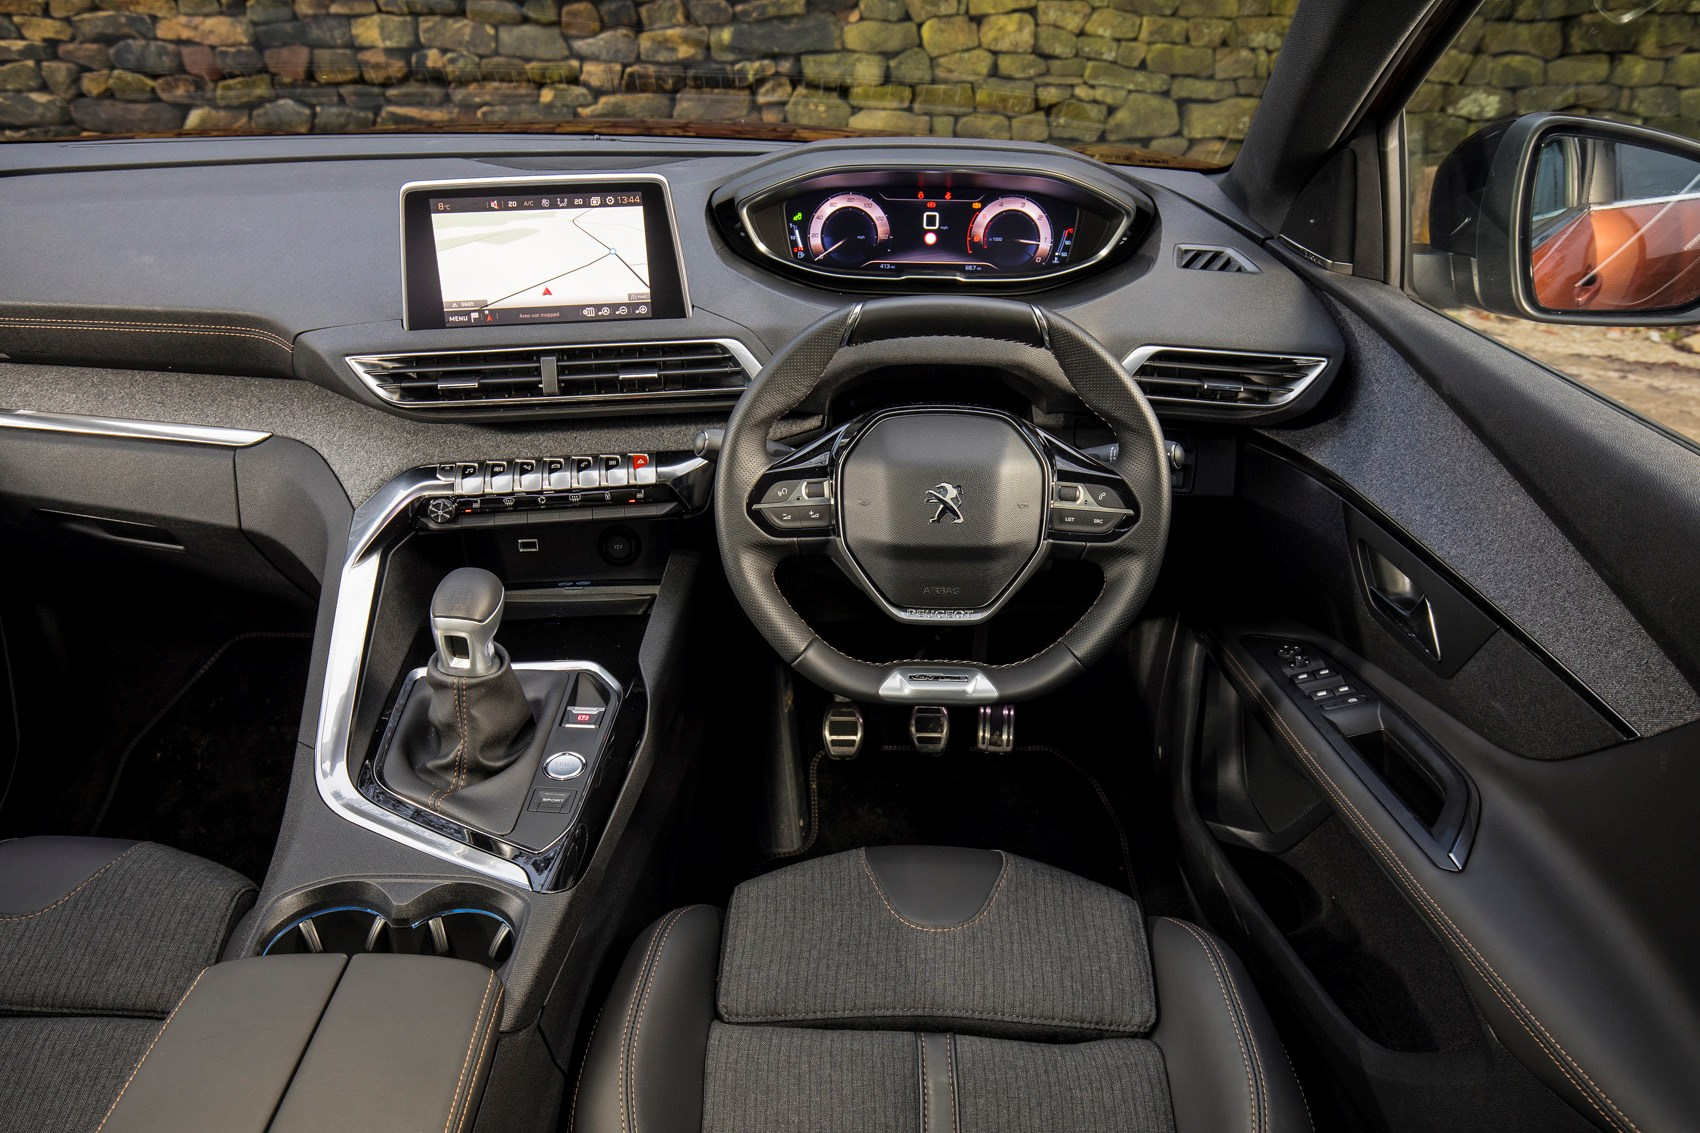 Suv Cars Uk >> Peugeot 3008 SUV Review (2016 - ) | Parkers